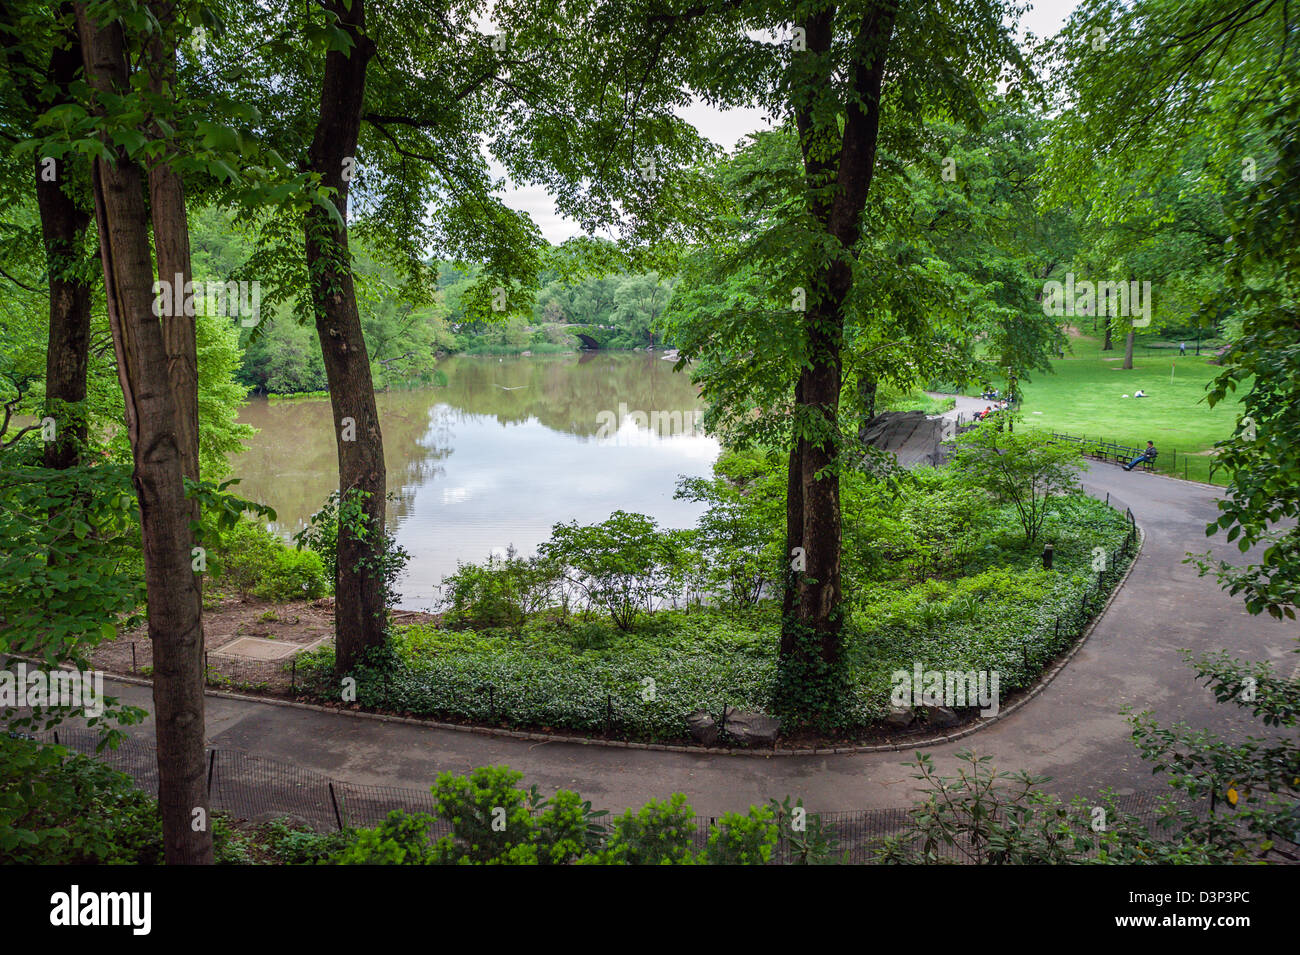 The beautiful, serene Central Park in NYC looking through the trees, across The Pond to the famous Gapstow Bridge. - Stock Image